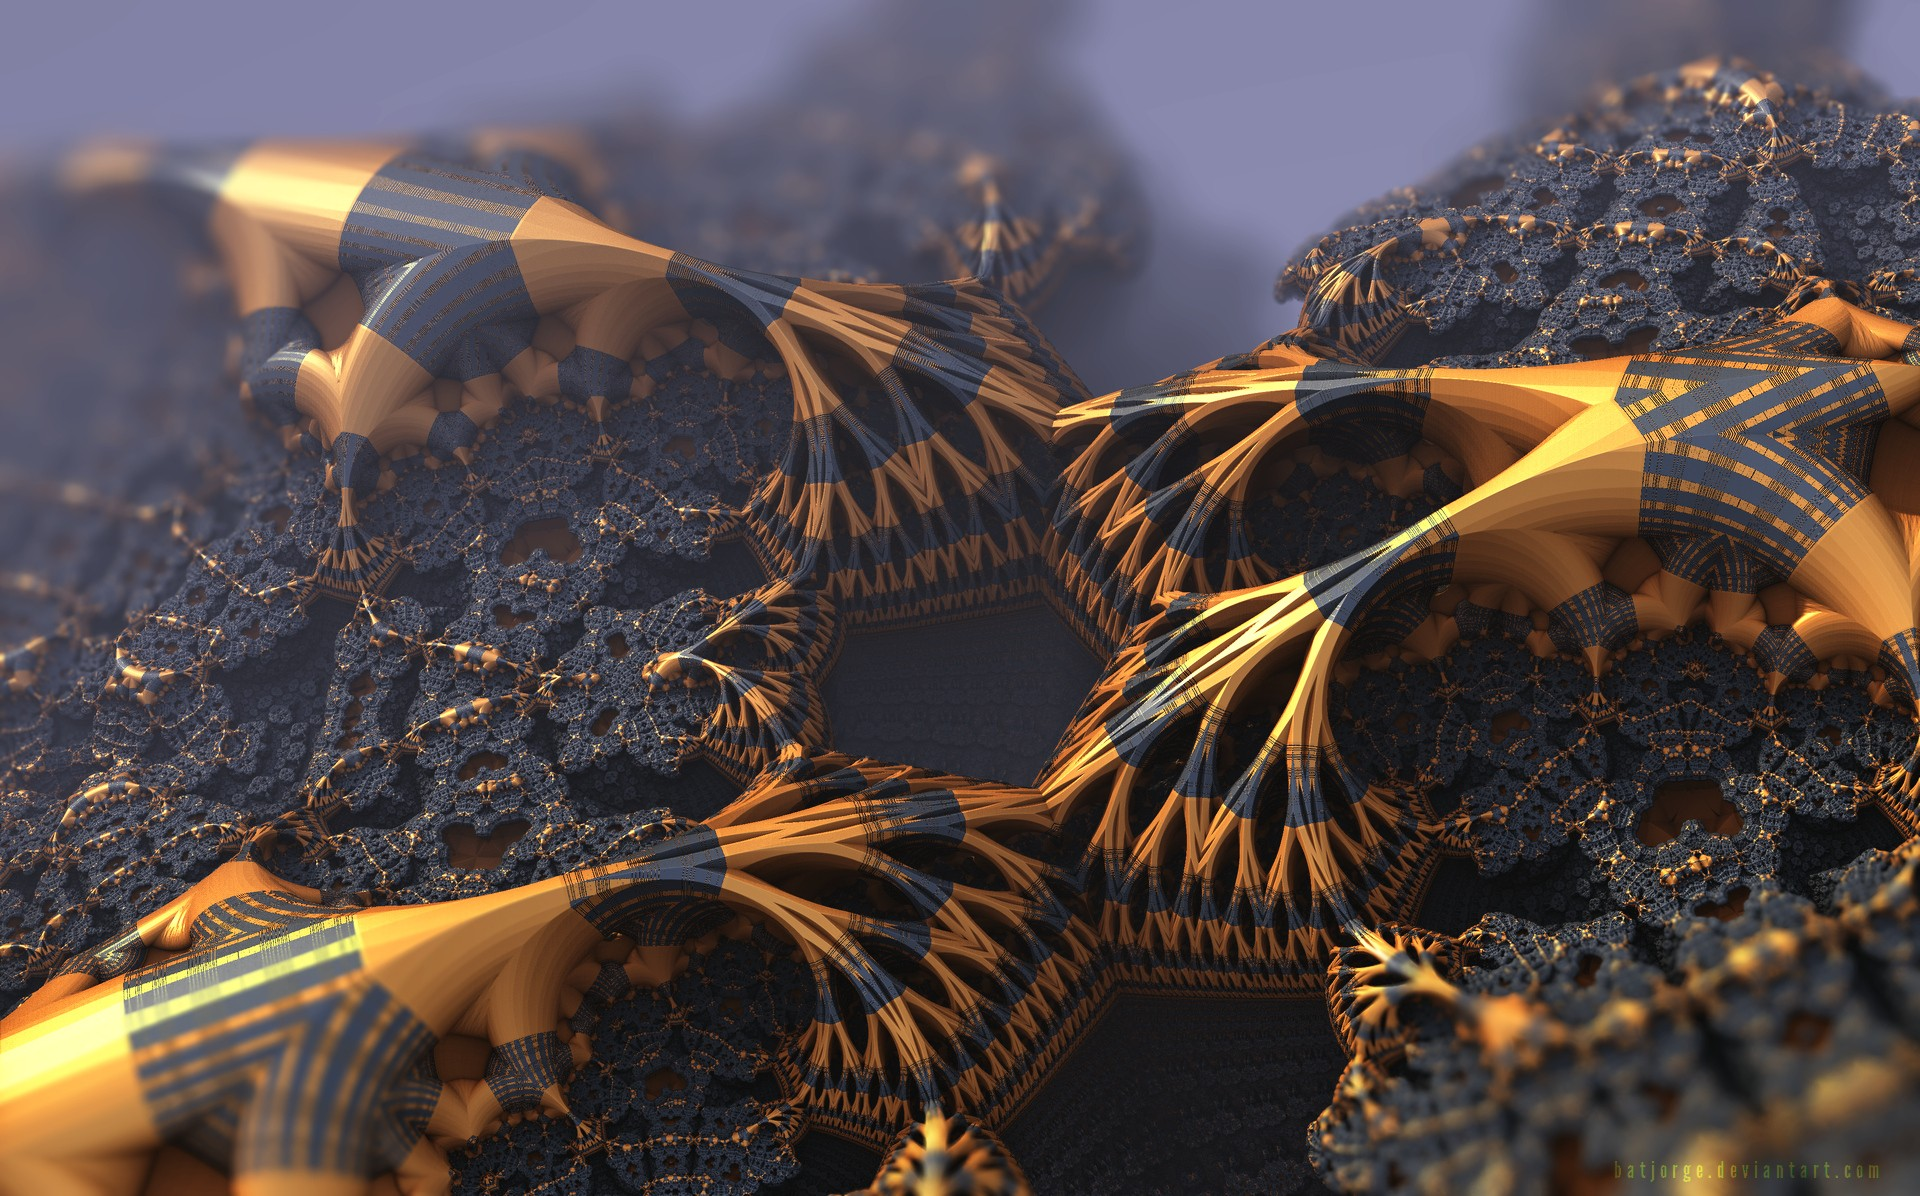 General 1920x1196 3D fractal fractal gold black abstract